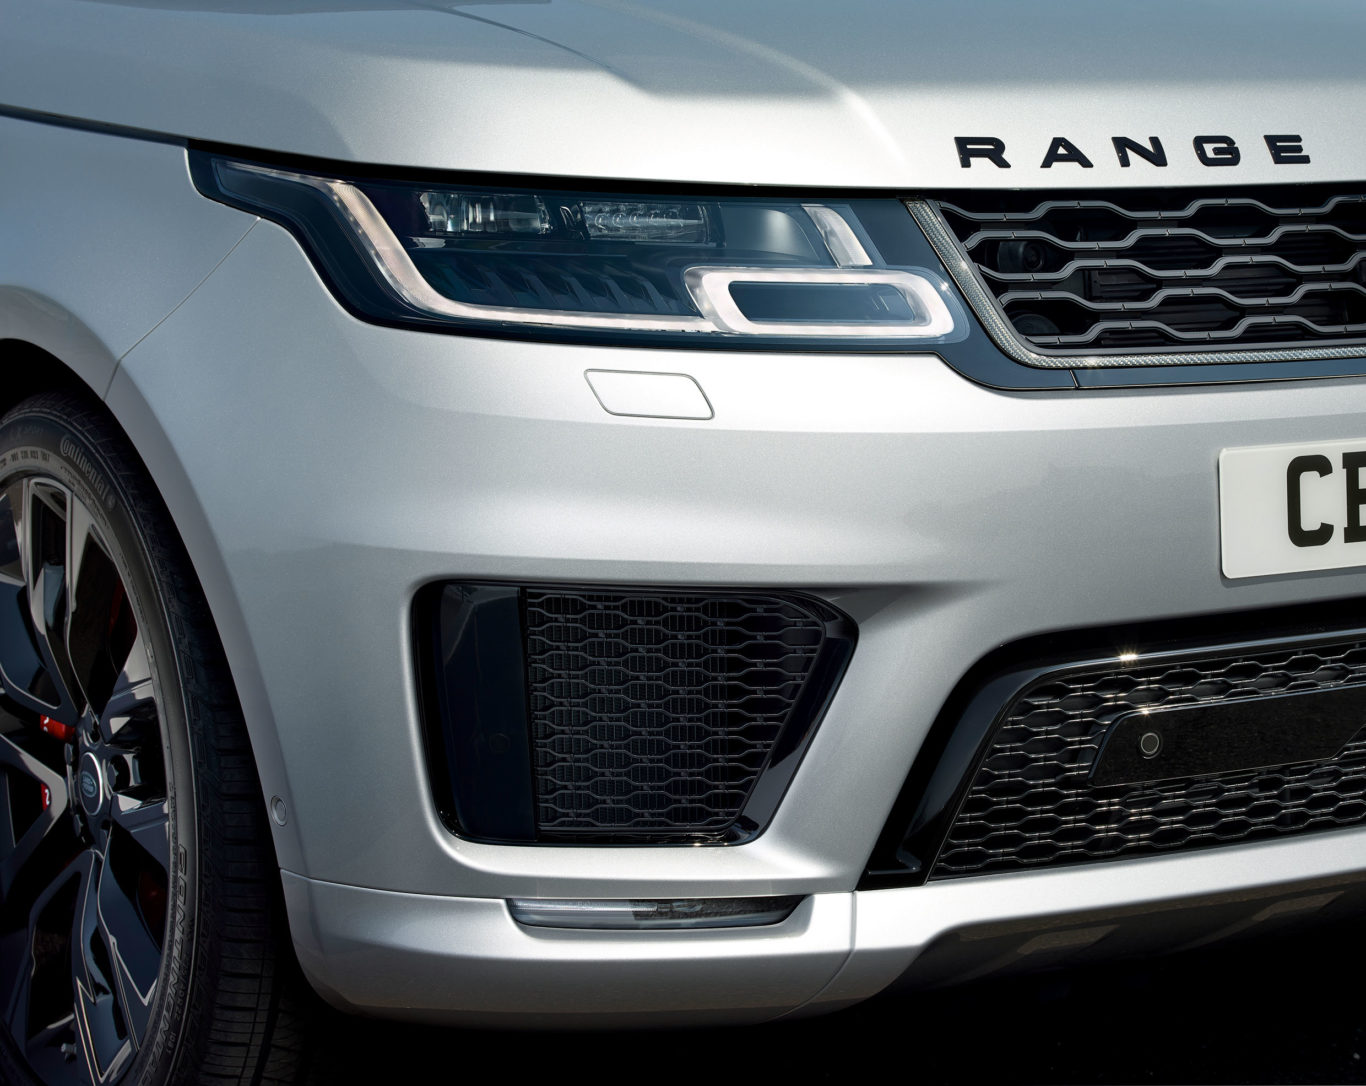 The Range Rover Sport is available now